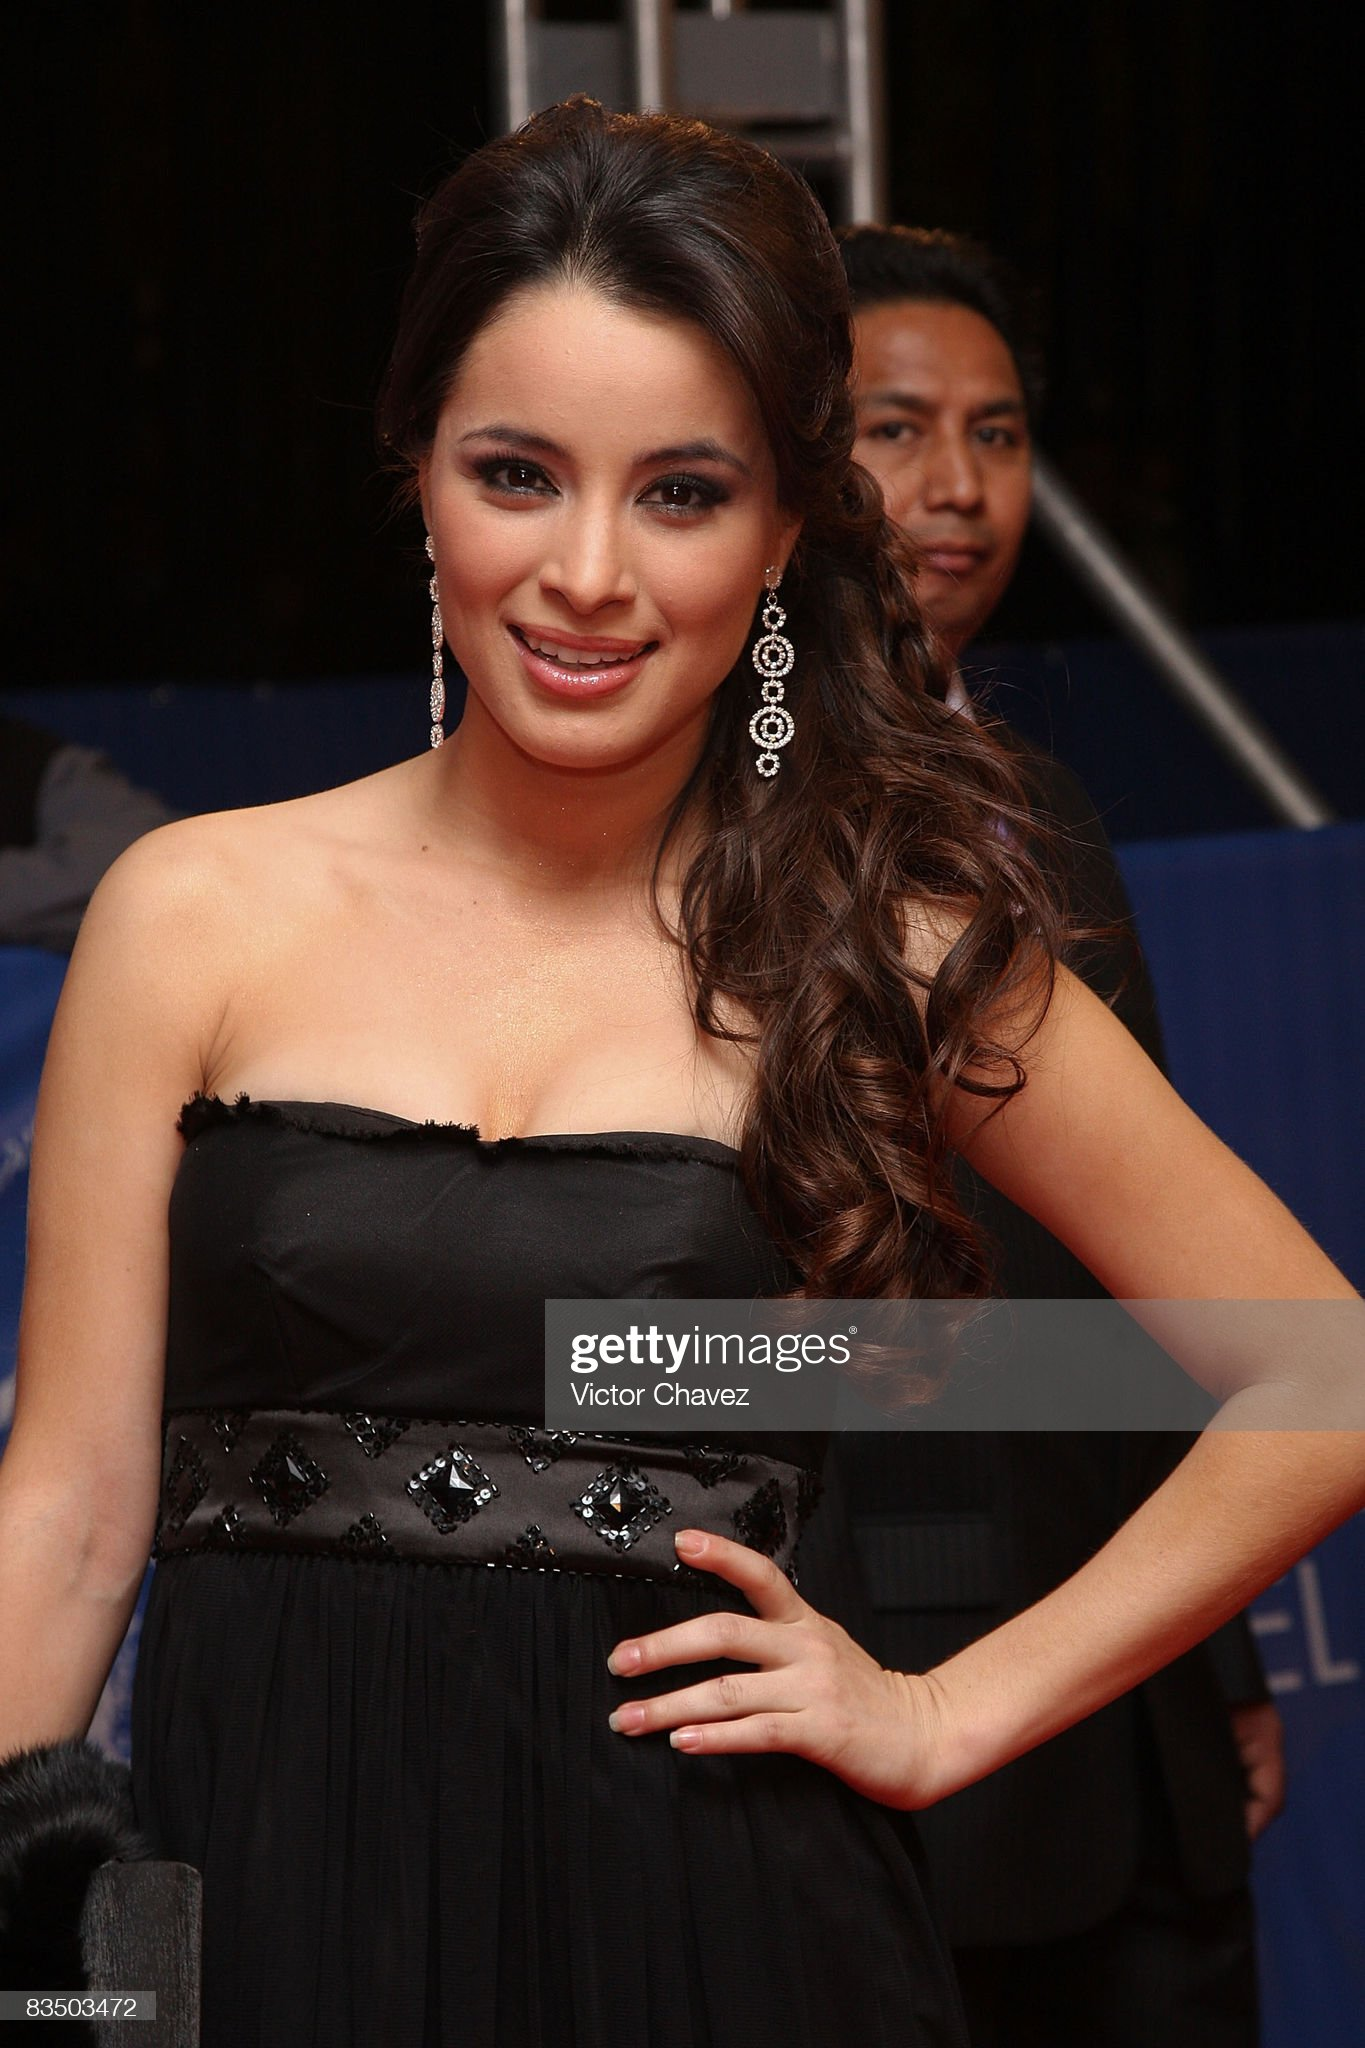 Top 80 Famosas Foroalturas - Página 2 Singer-cynthia-rodriguez-of-la-academia-attends-the-red-carpet-for-picture-id83503472?s=2048x2048